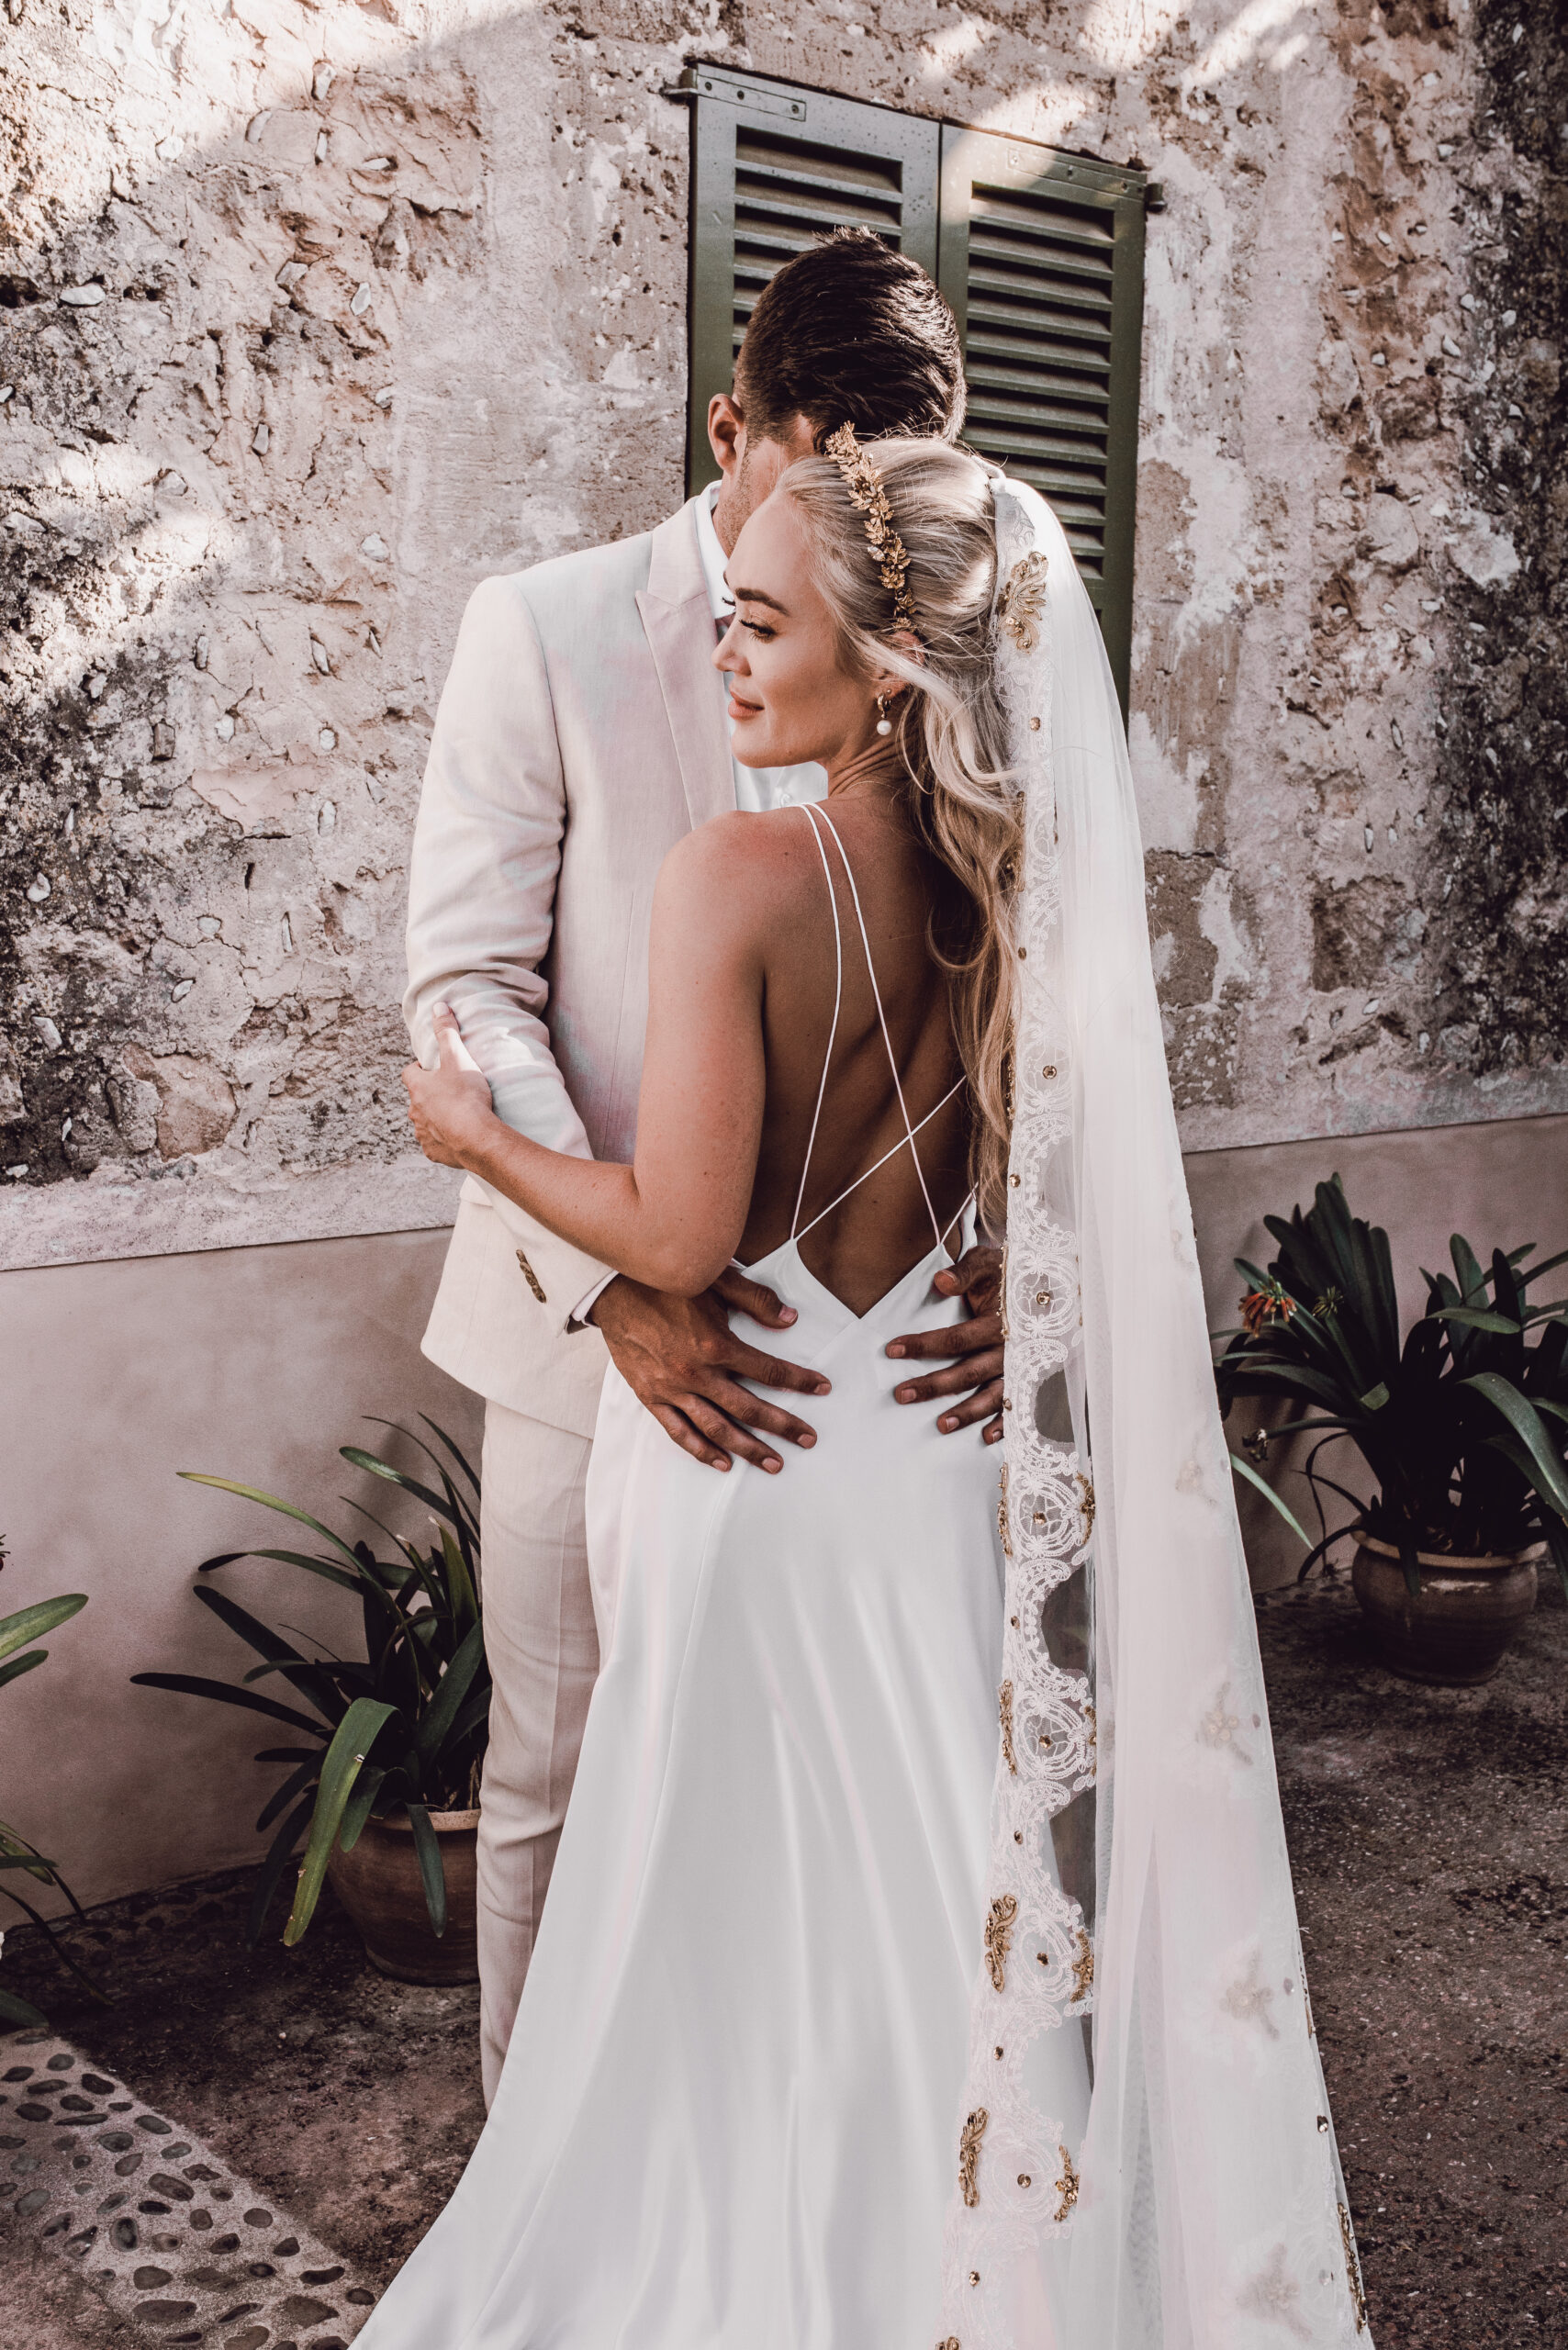 The bride and groom share a moment outside the charming Finca - Rebecca Jackson Photography